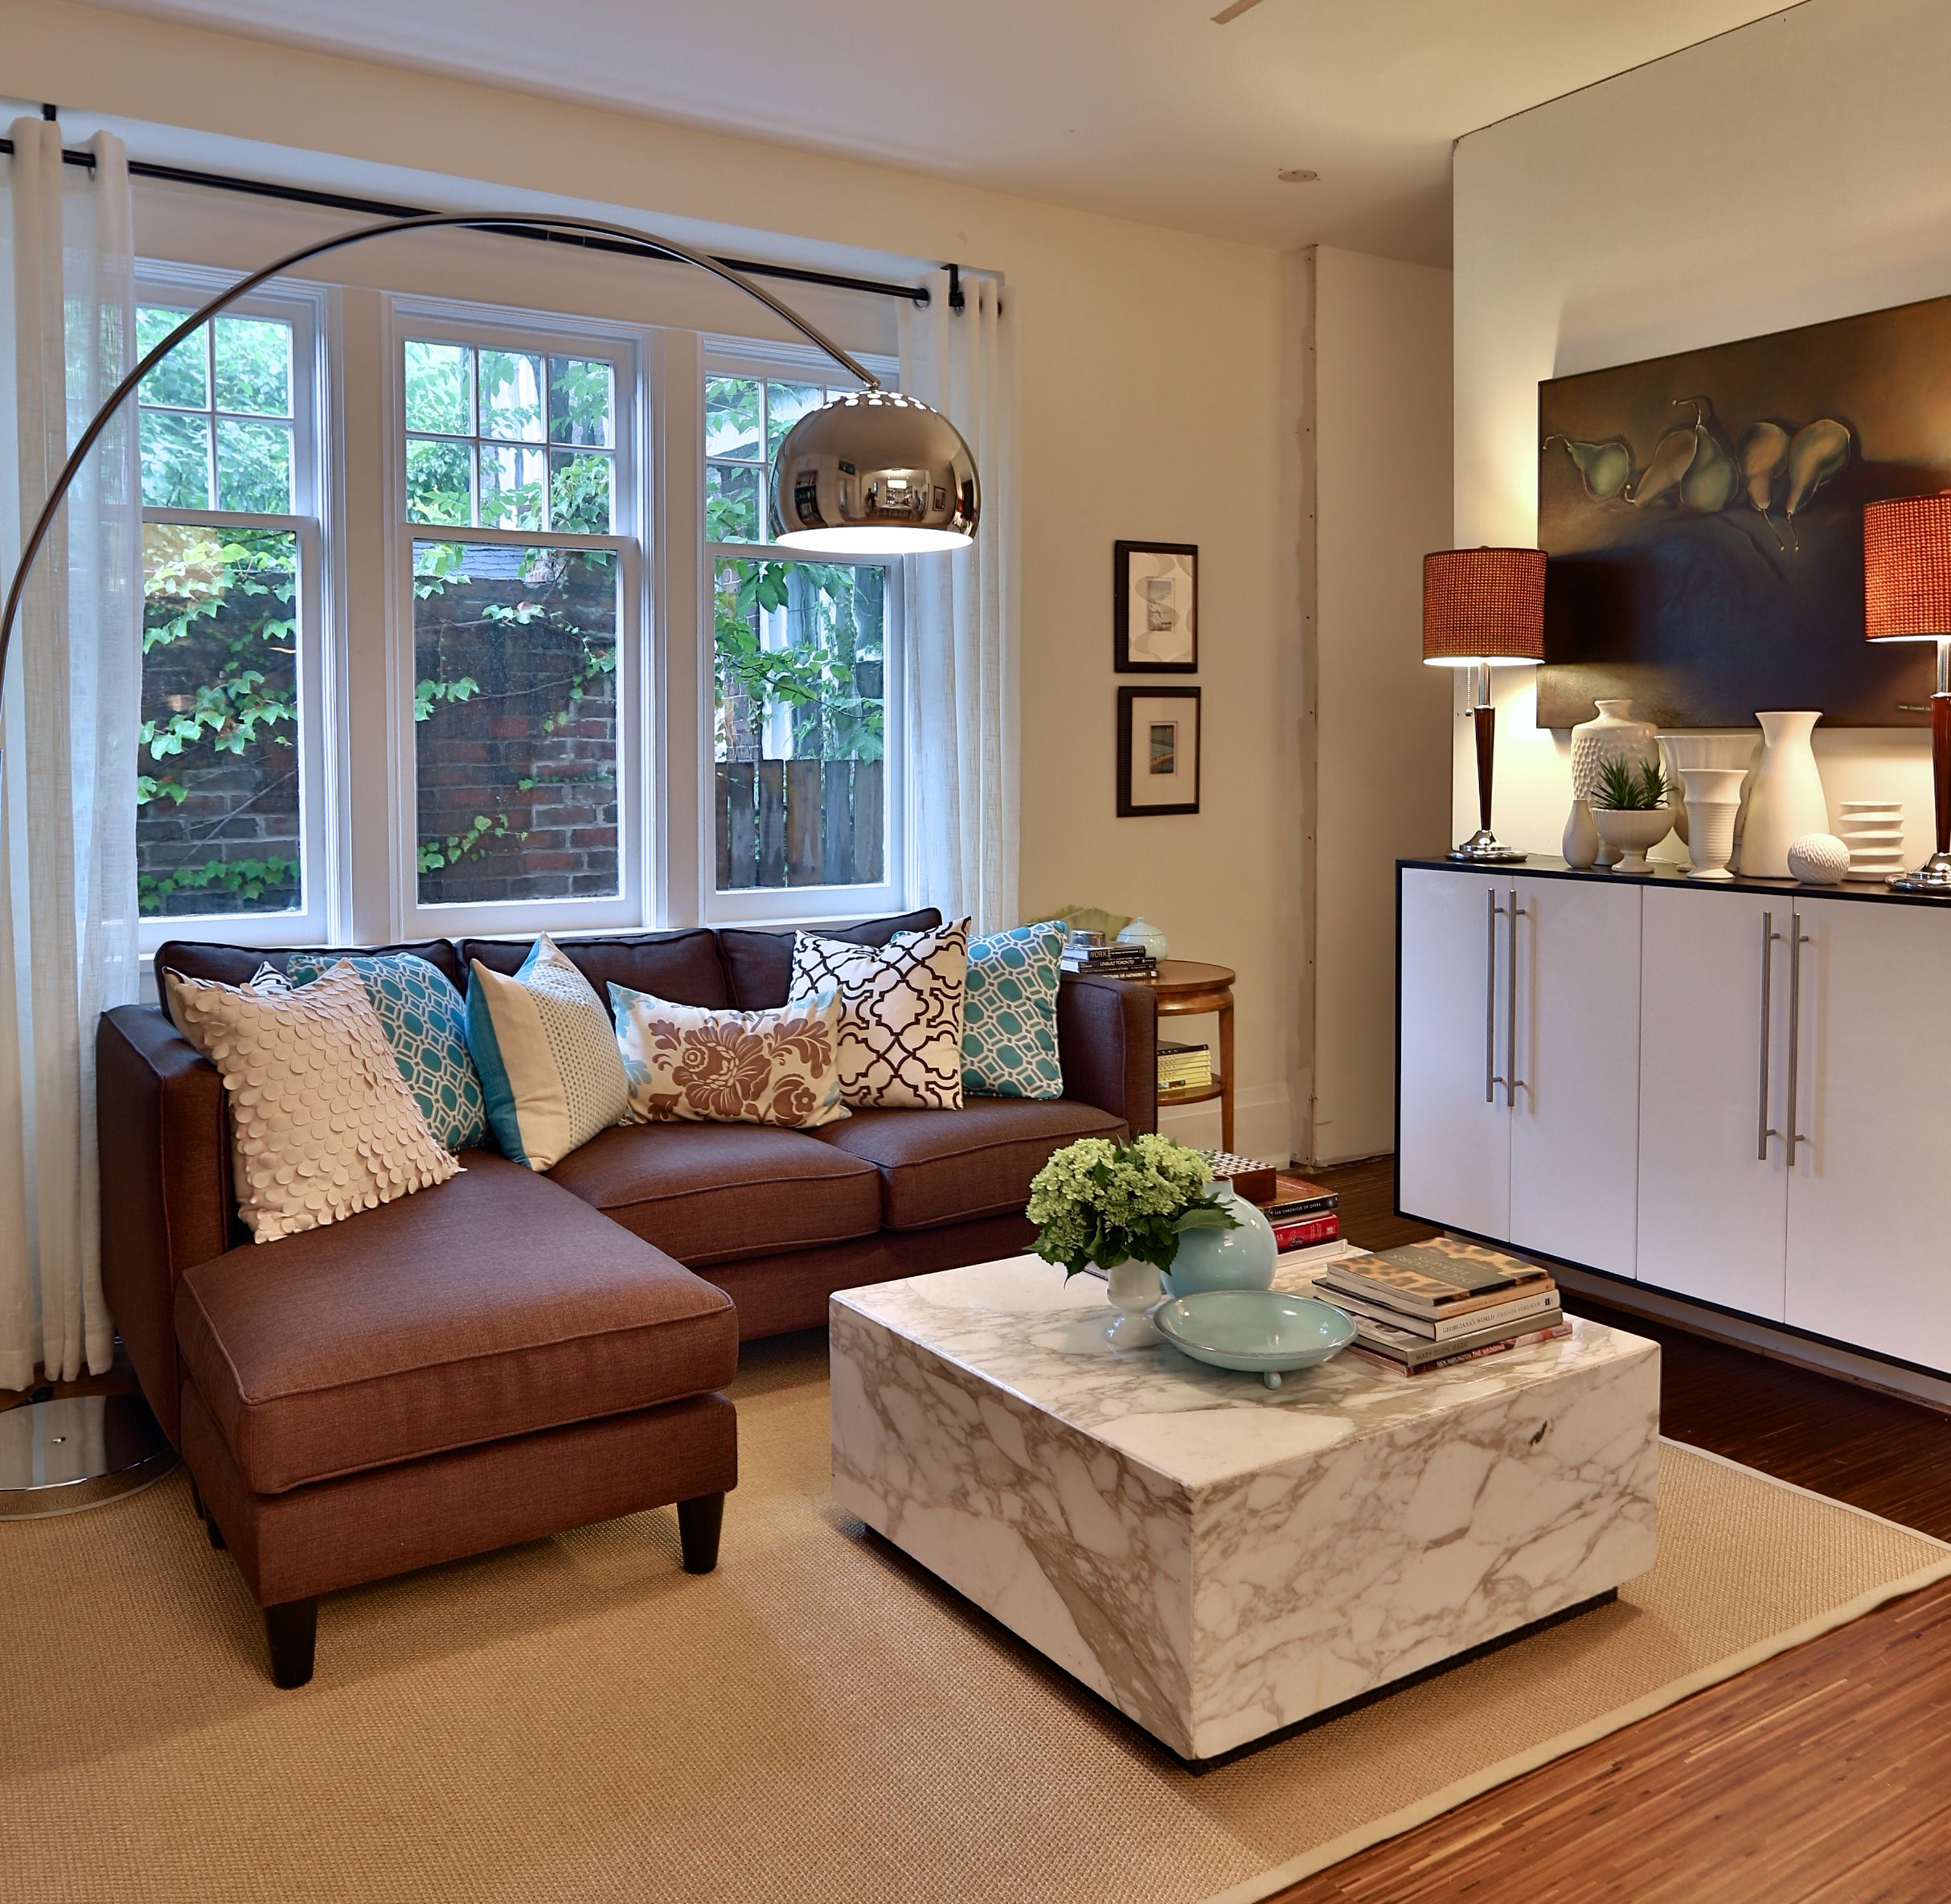 Interior Design Home Staging: Home Staging, Decoration & Interior